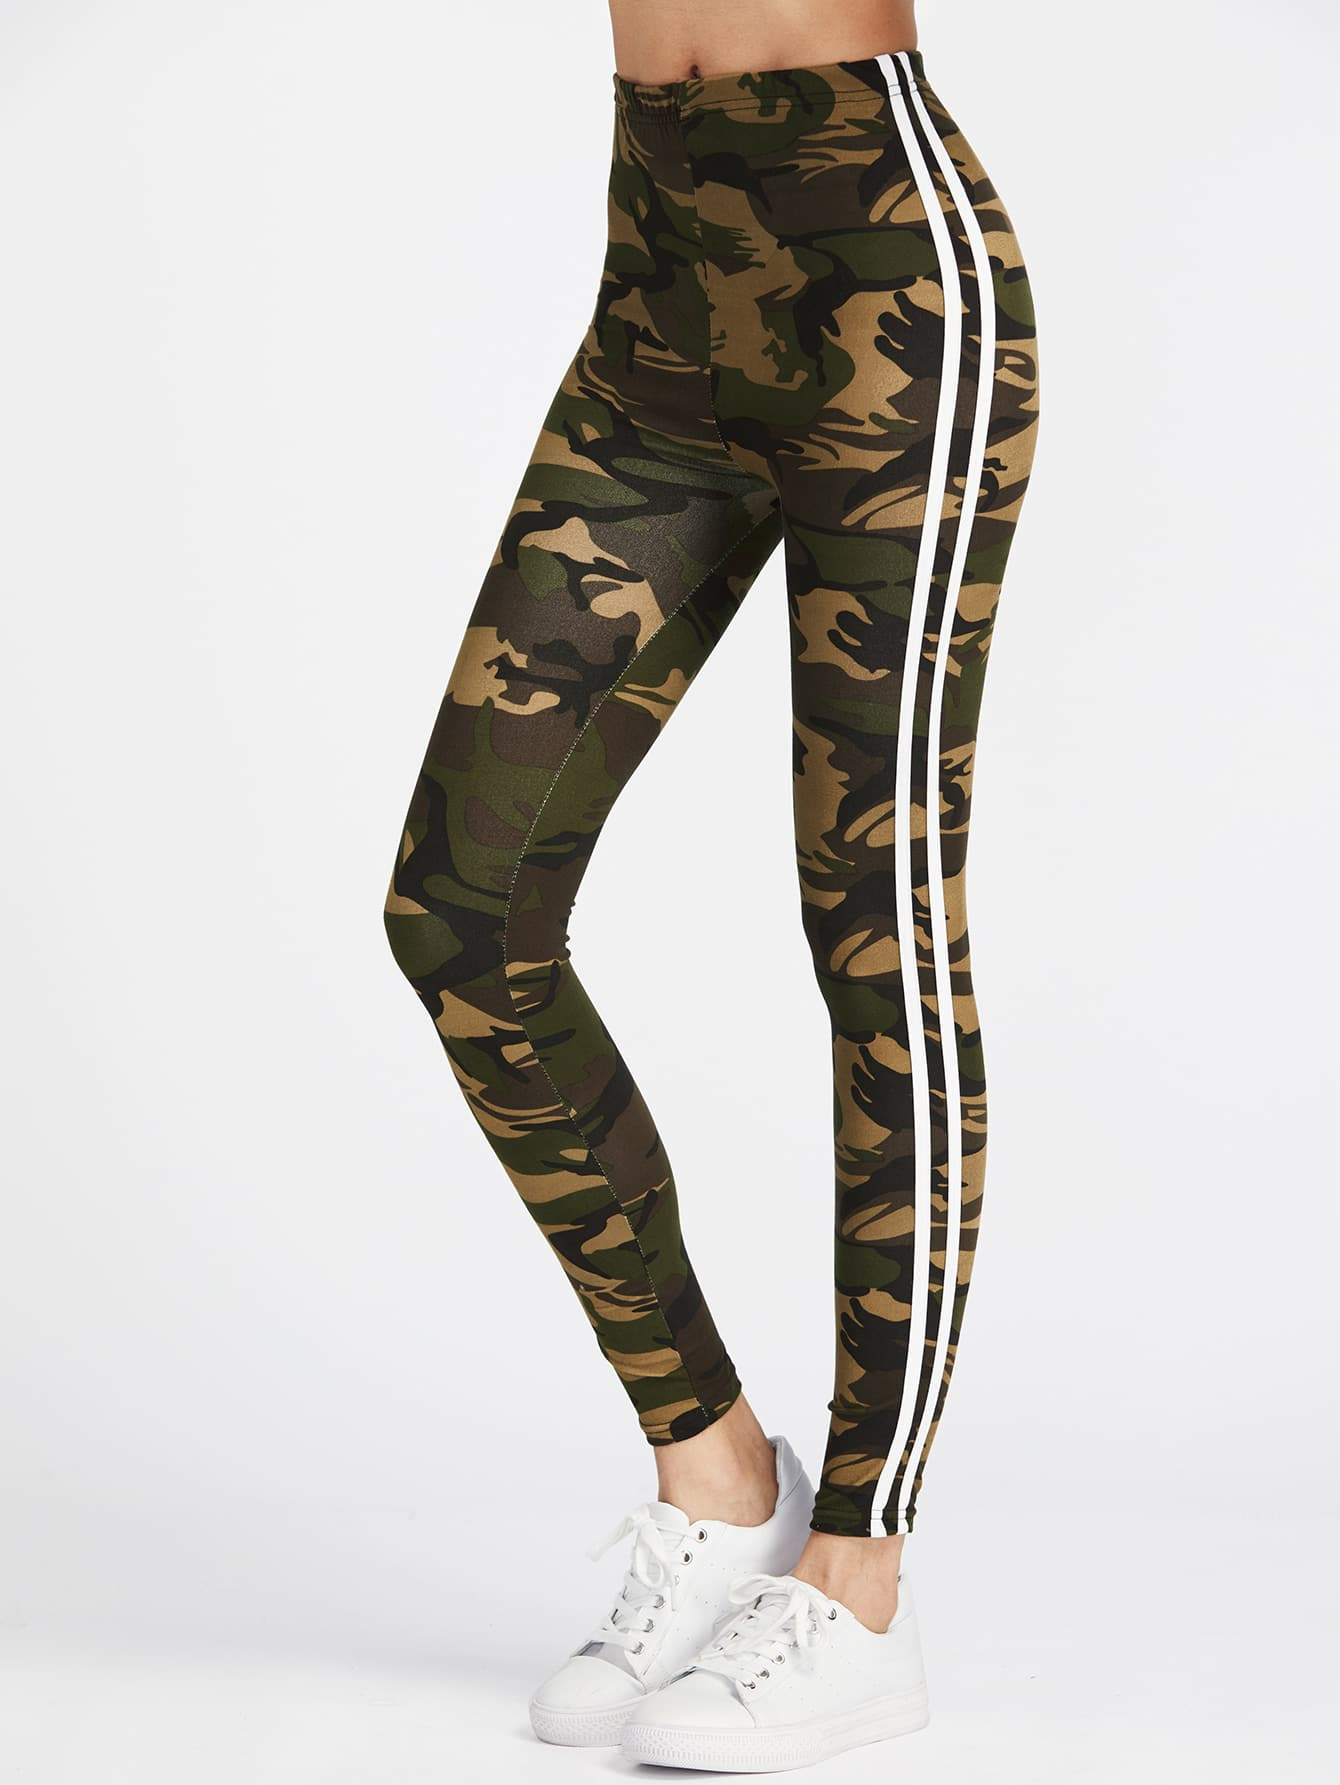 Print Romwe Striped Side Leggings Camo